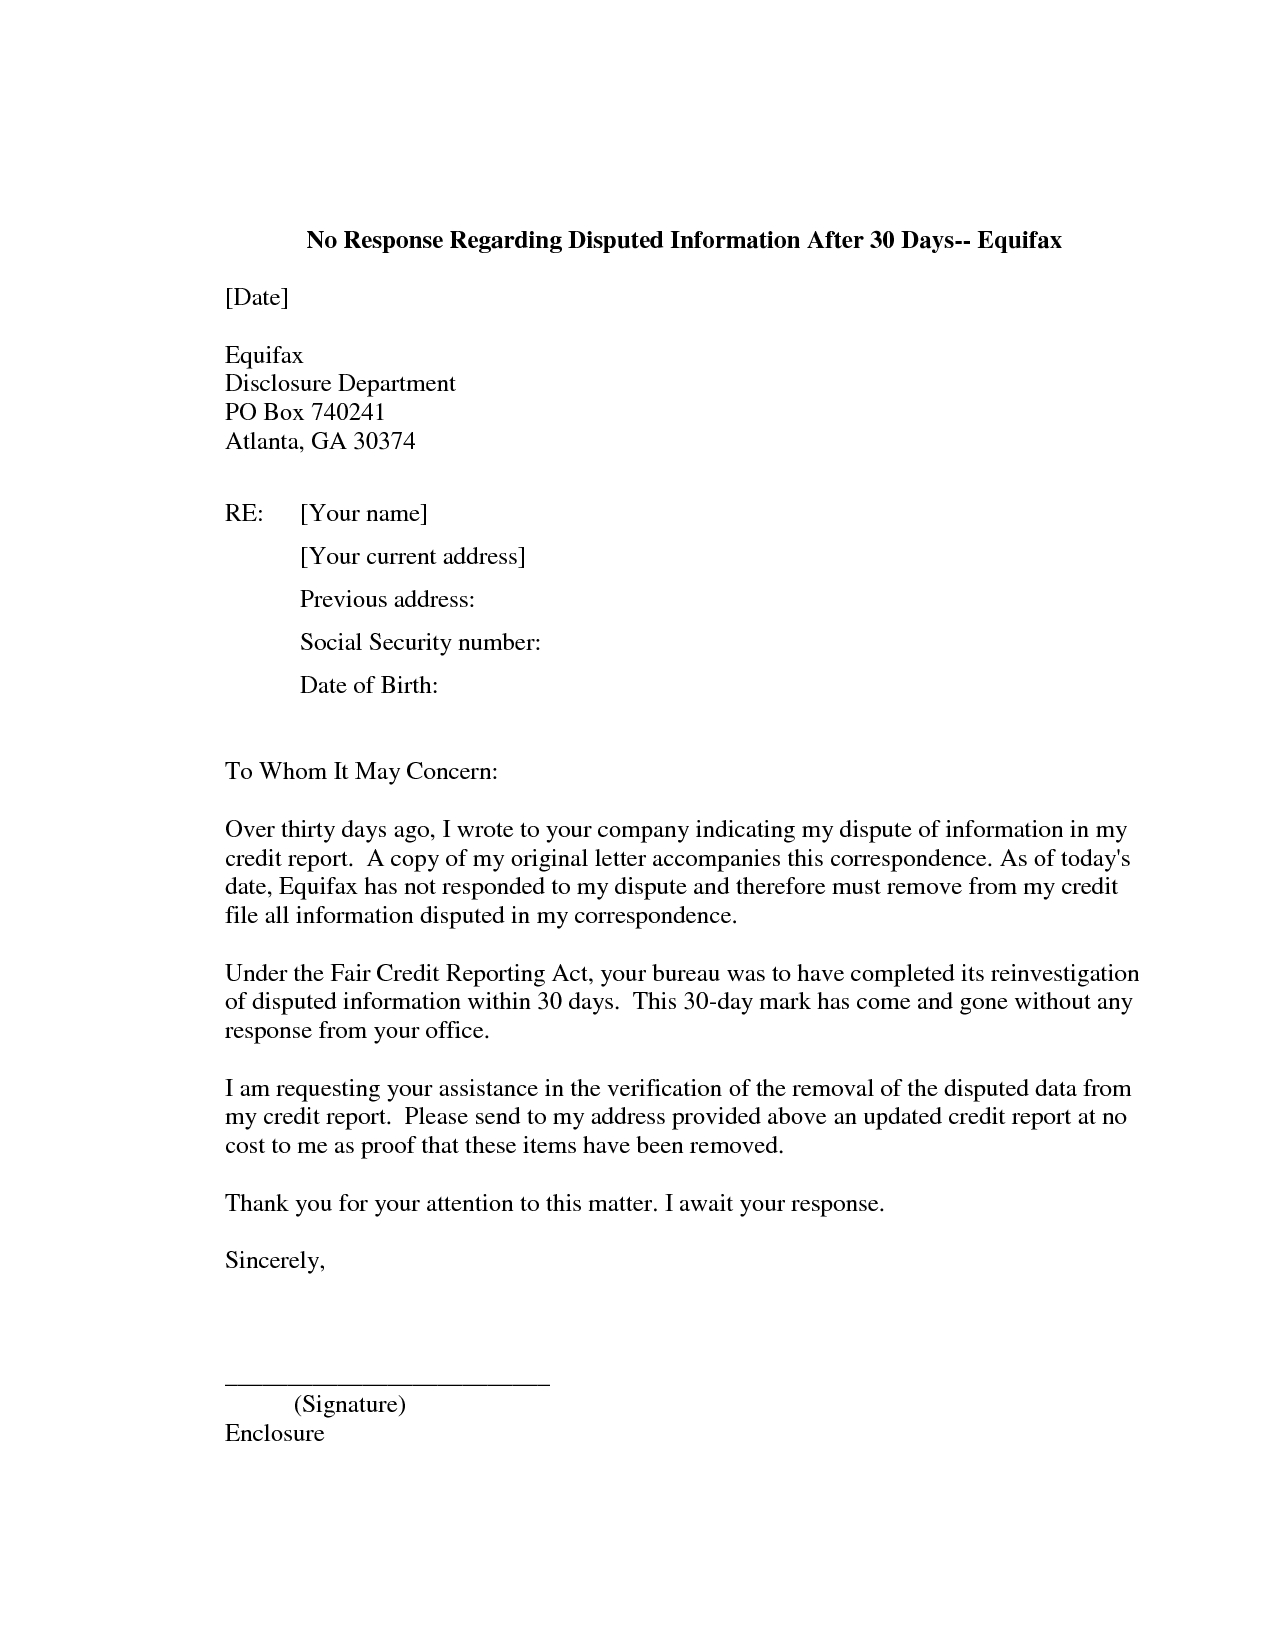 609 Dispute Letter to Credit Bureau Template - How to Write A Letter to Credit Bureau Letter format formal